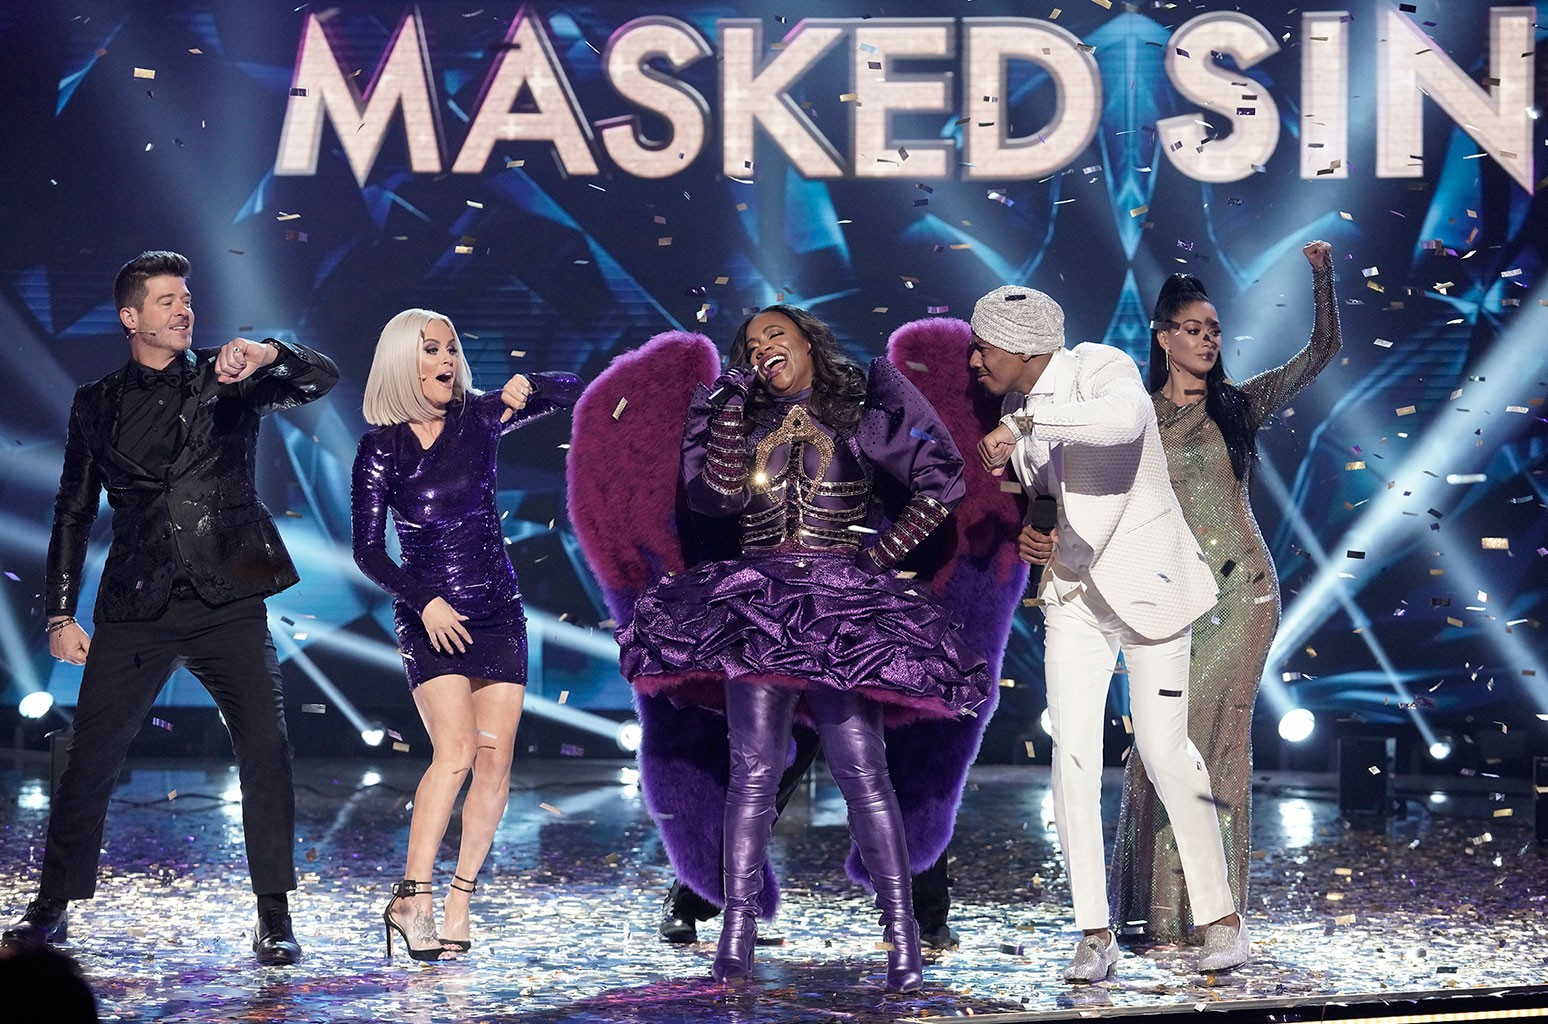 'The Masked Singer' Recap: Night Angel Scrubs the Competition, Wins Season 3